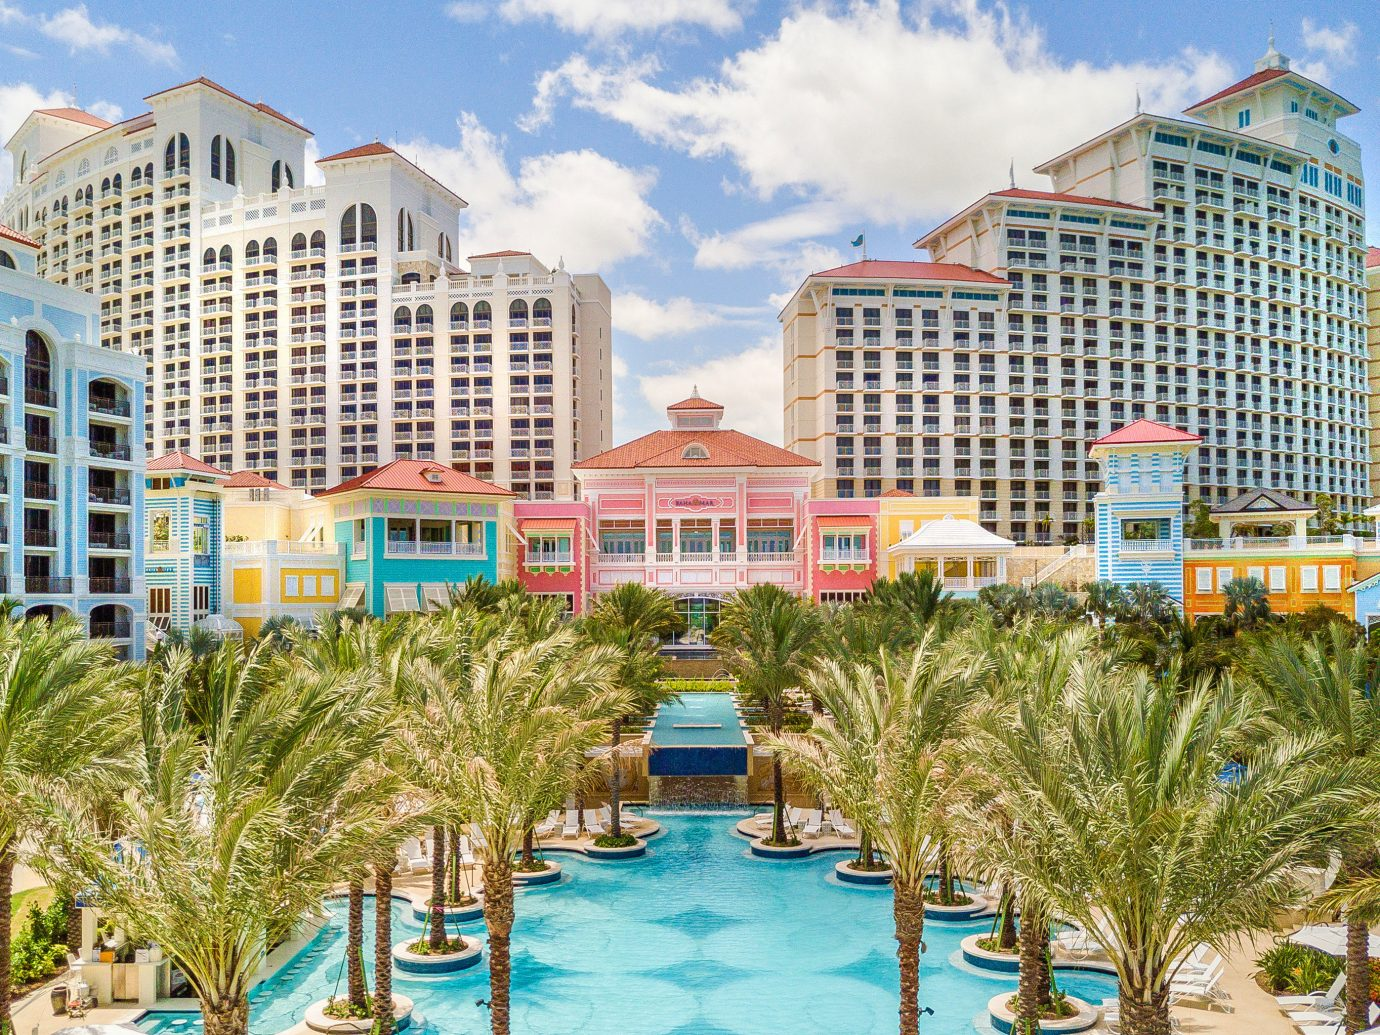 Boutique Hotels Hotels Luxury Travel outdoor Resort condominium mixed use hotel metropolitan area palm tree real estate leisure arecales vacation City swimming pool tourism water building tree recreation apartment lined several sandy